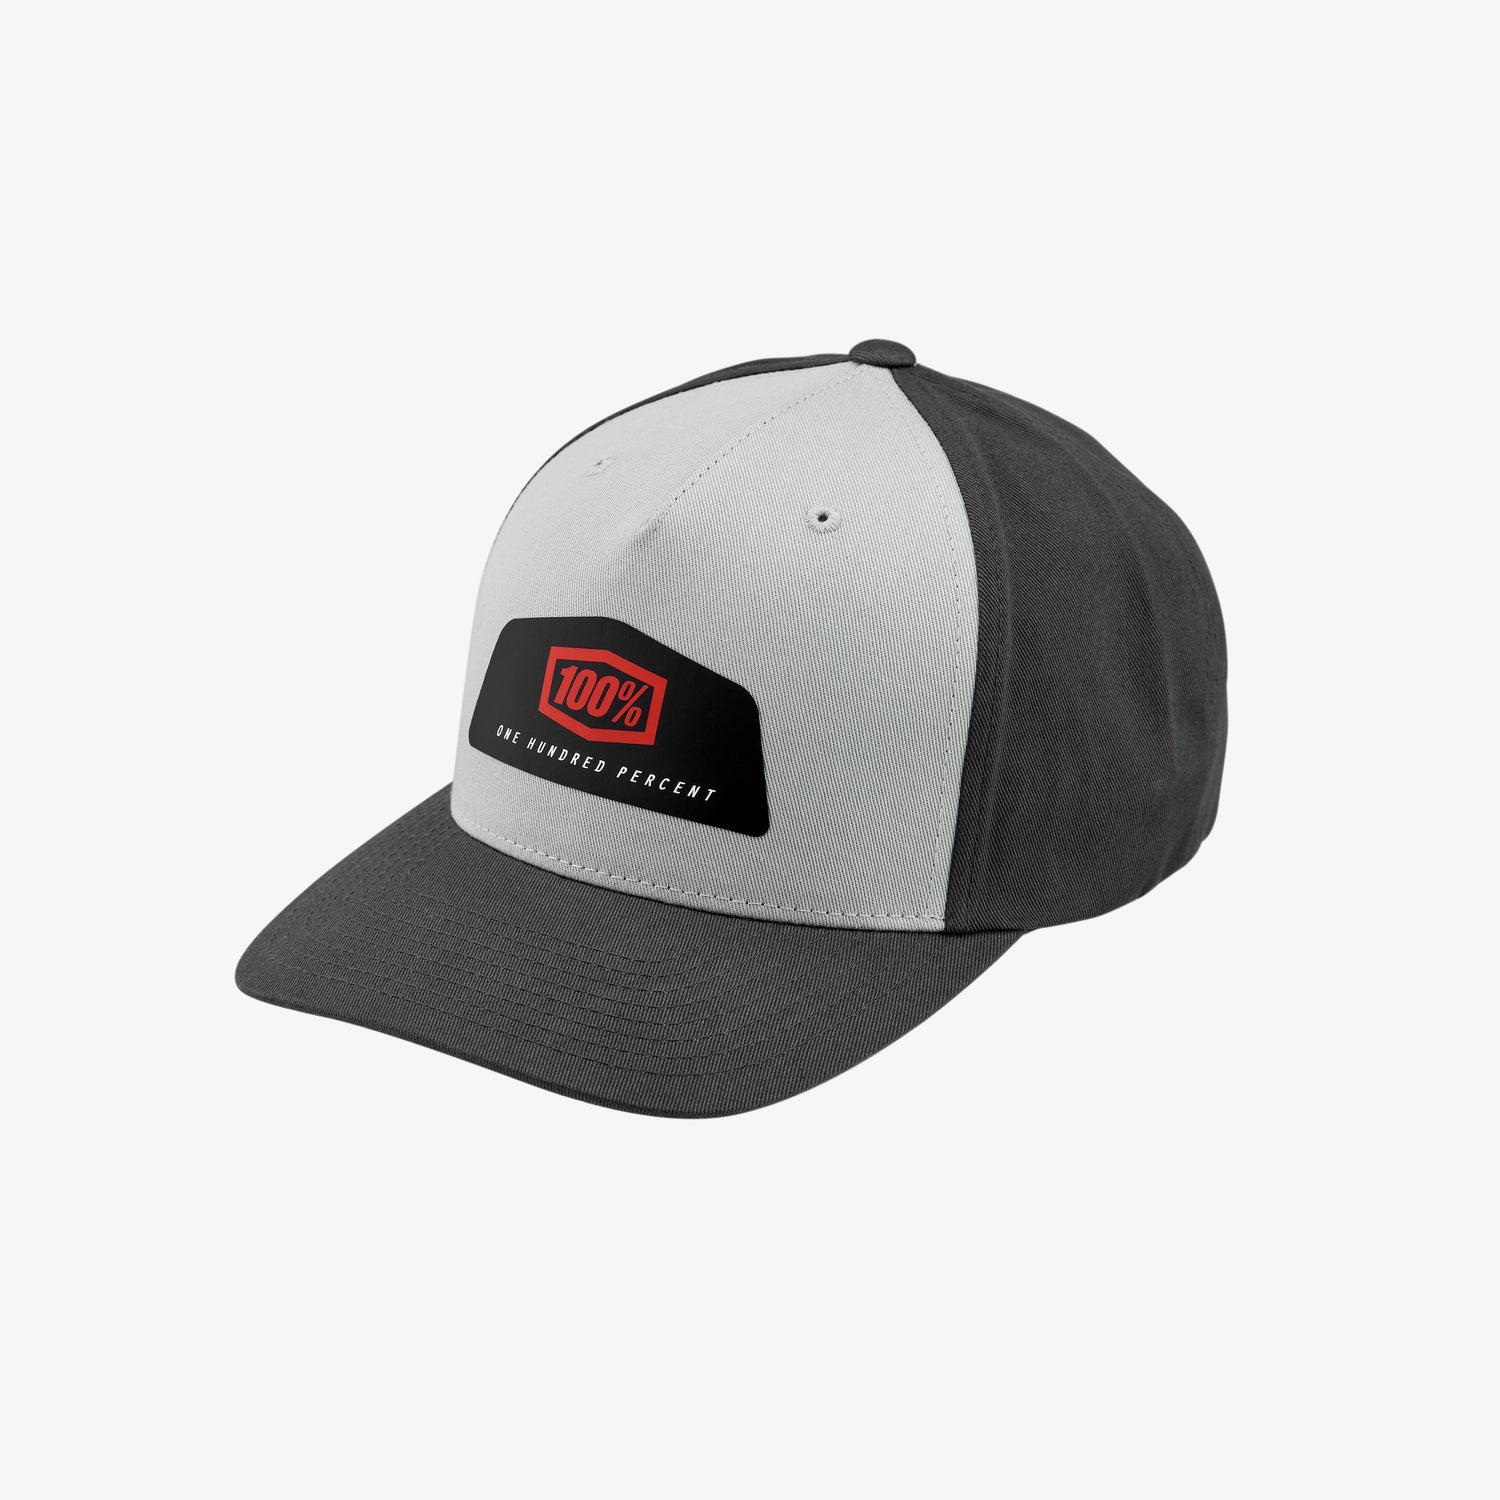 GUILD X-Fit Snapback Hat Grey